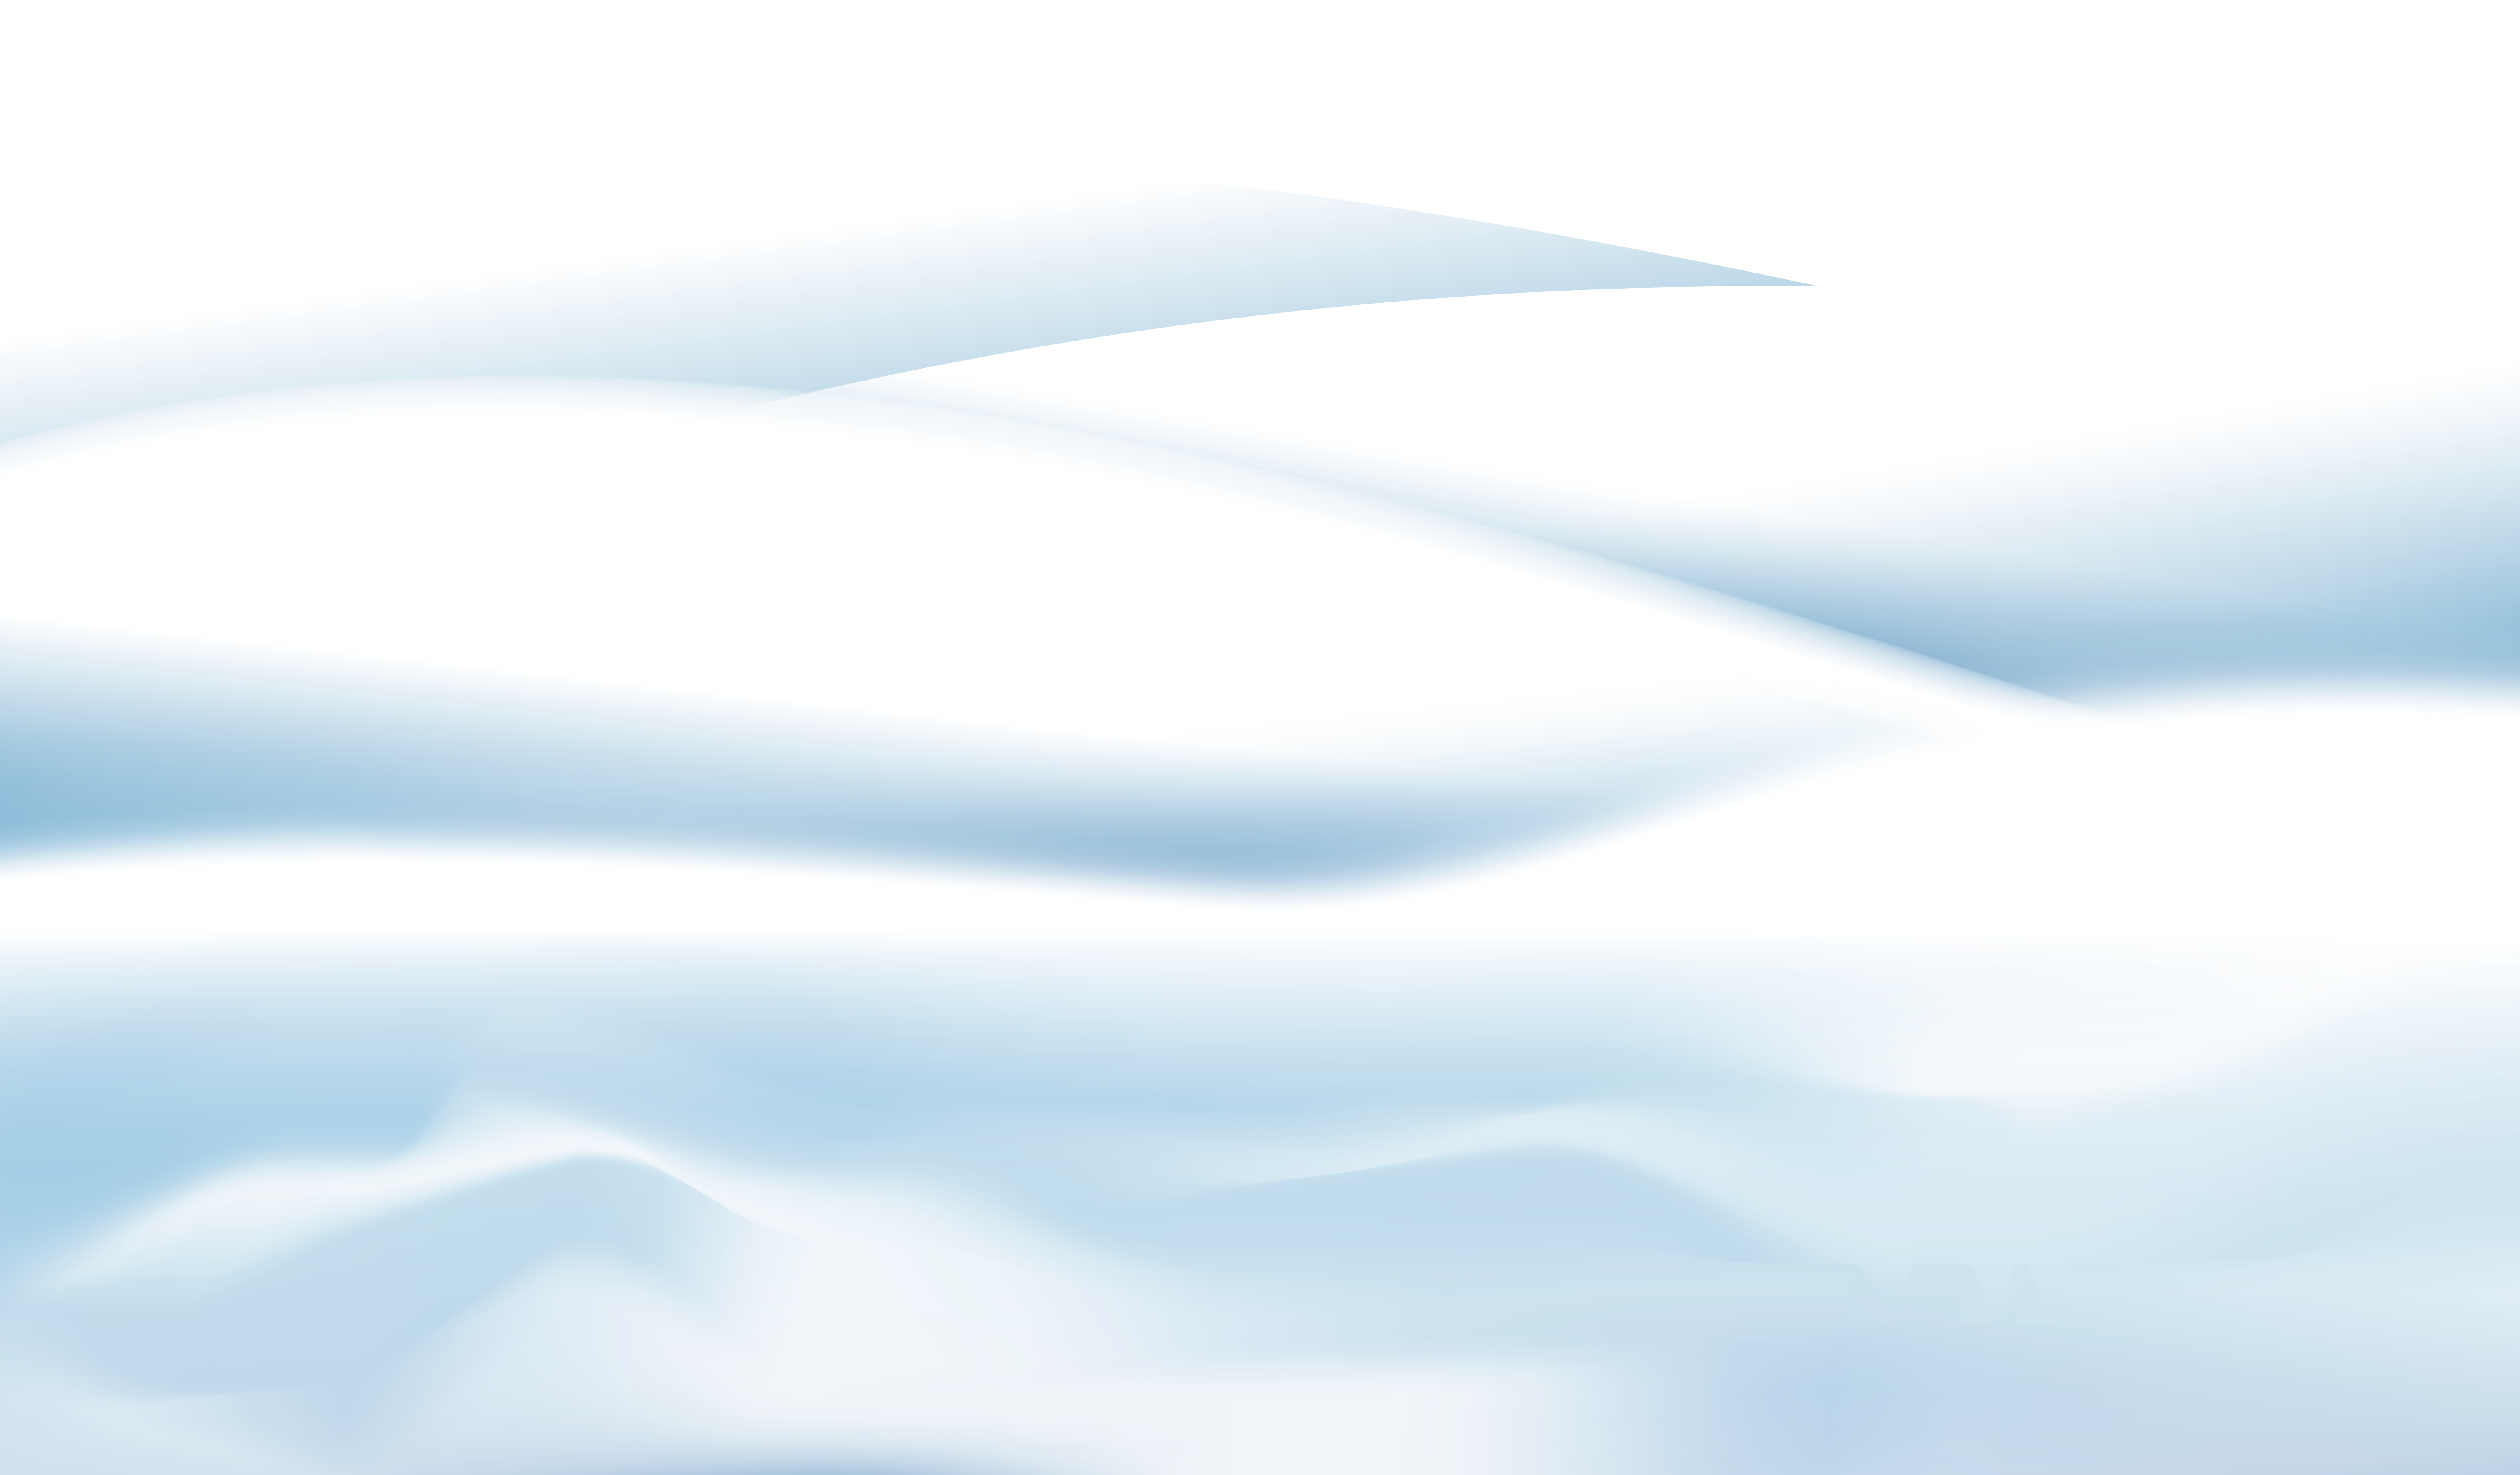 Snow on ground png. Collection of clipart